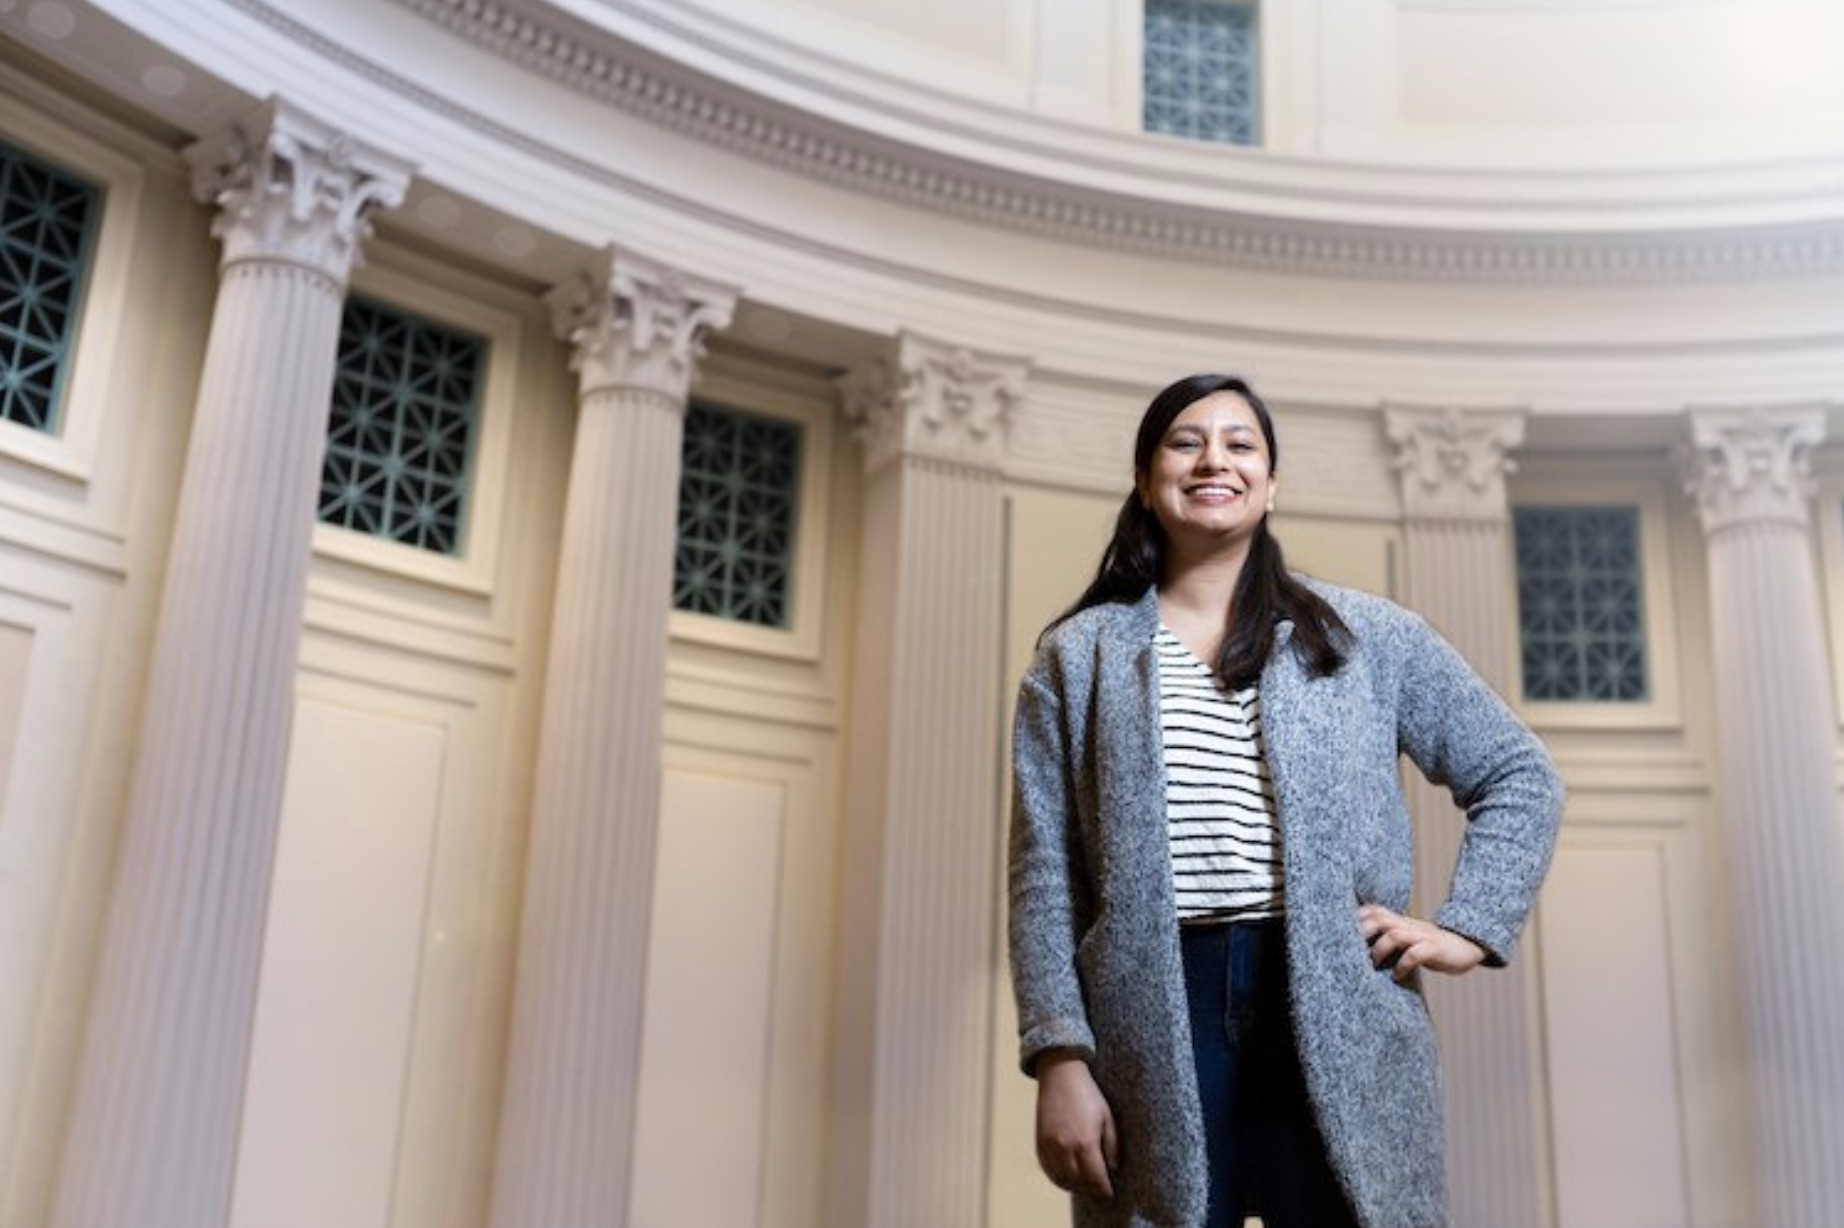 Scholarships Open Up Learning Opportunities at MIT